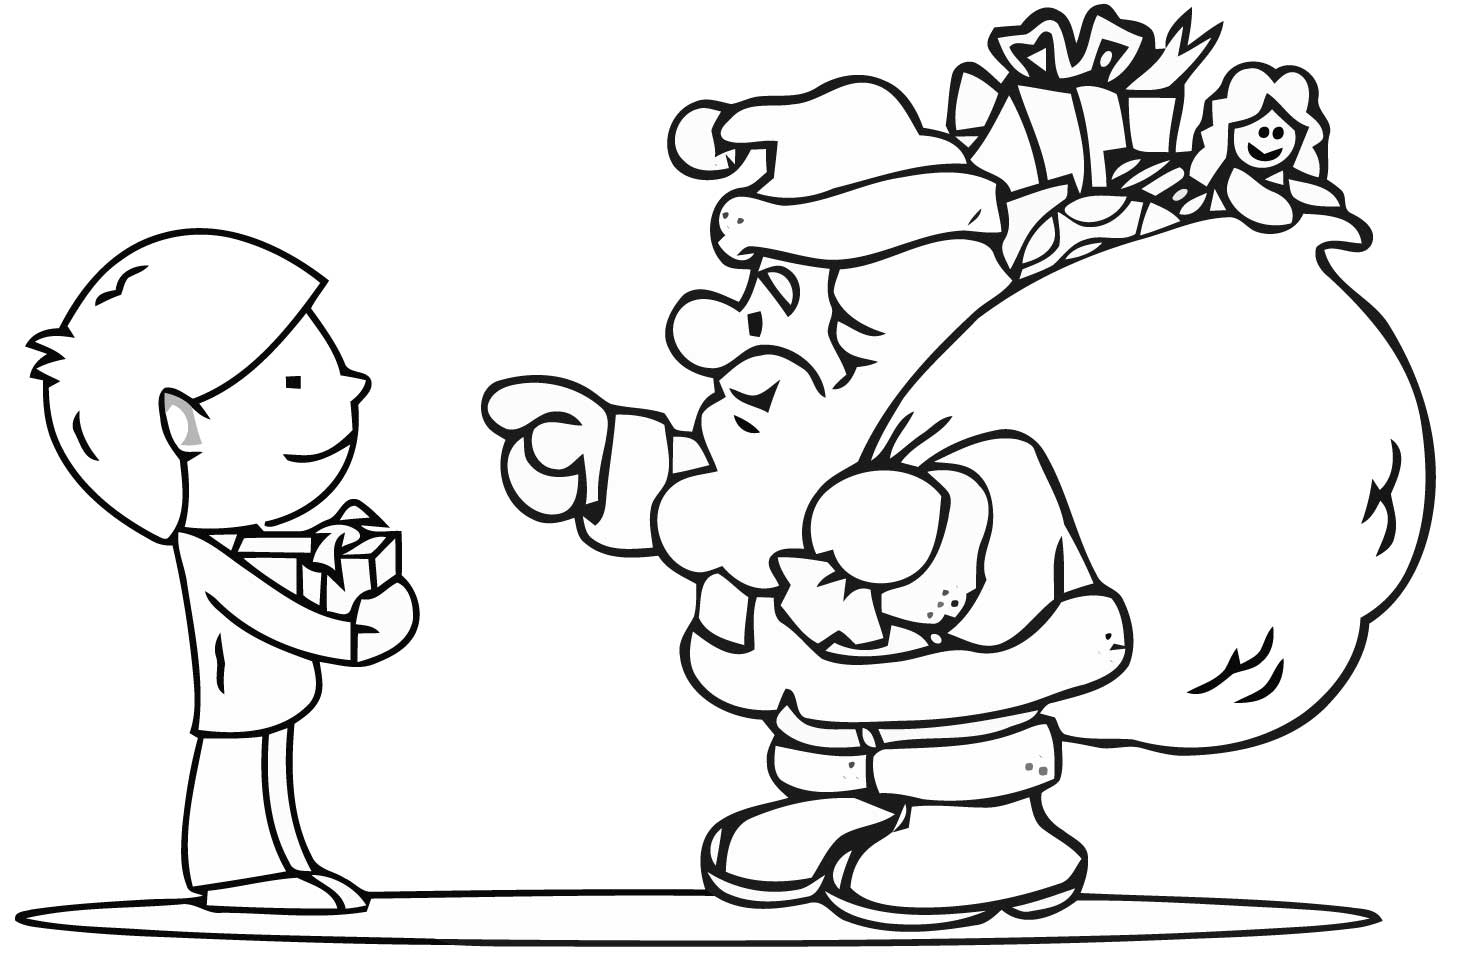 Free Christmas Colouring Pages For Children Kids Online World Blog